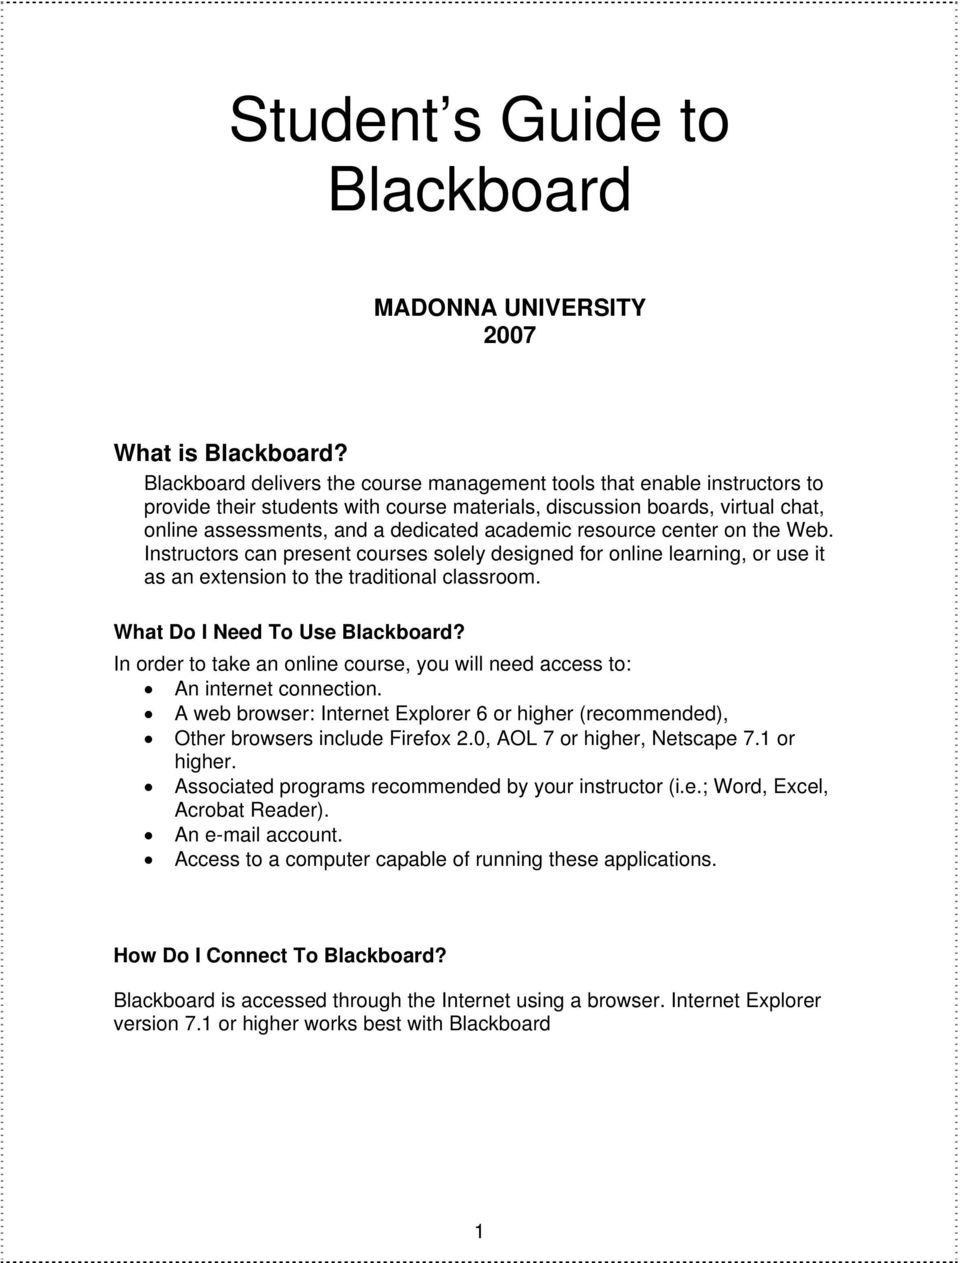 resource center on the Web. Instructors can present courses solely designed for online learning, or use it as an extension to the traditional classroom. What Do I Need To Use Blackboard?